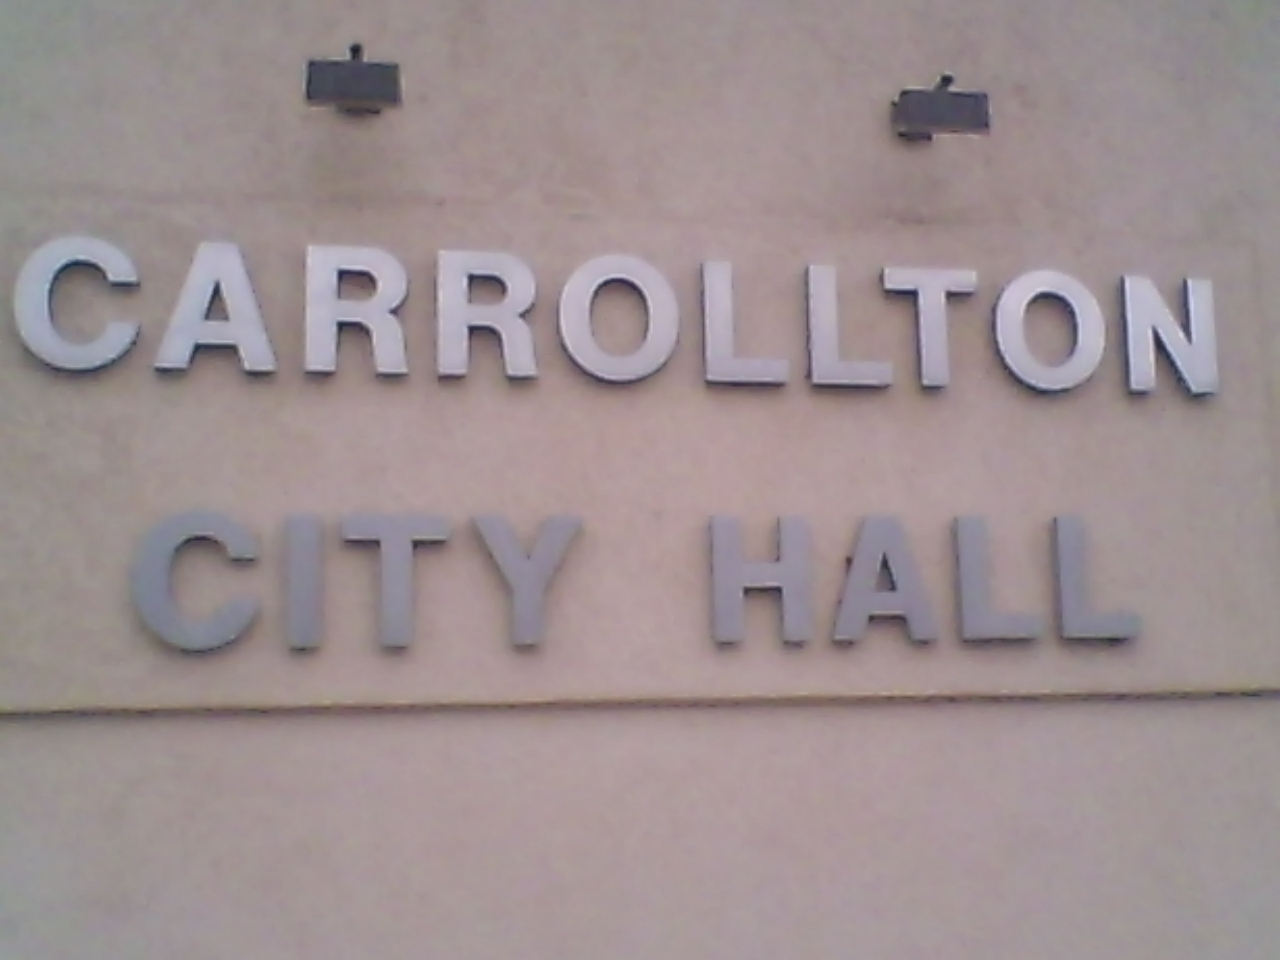 Carrollton City Council for September 2